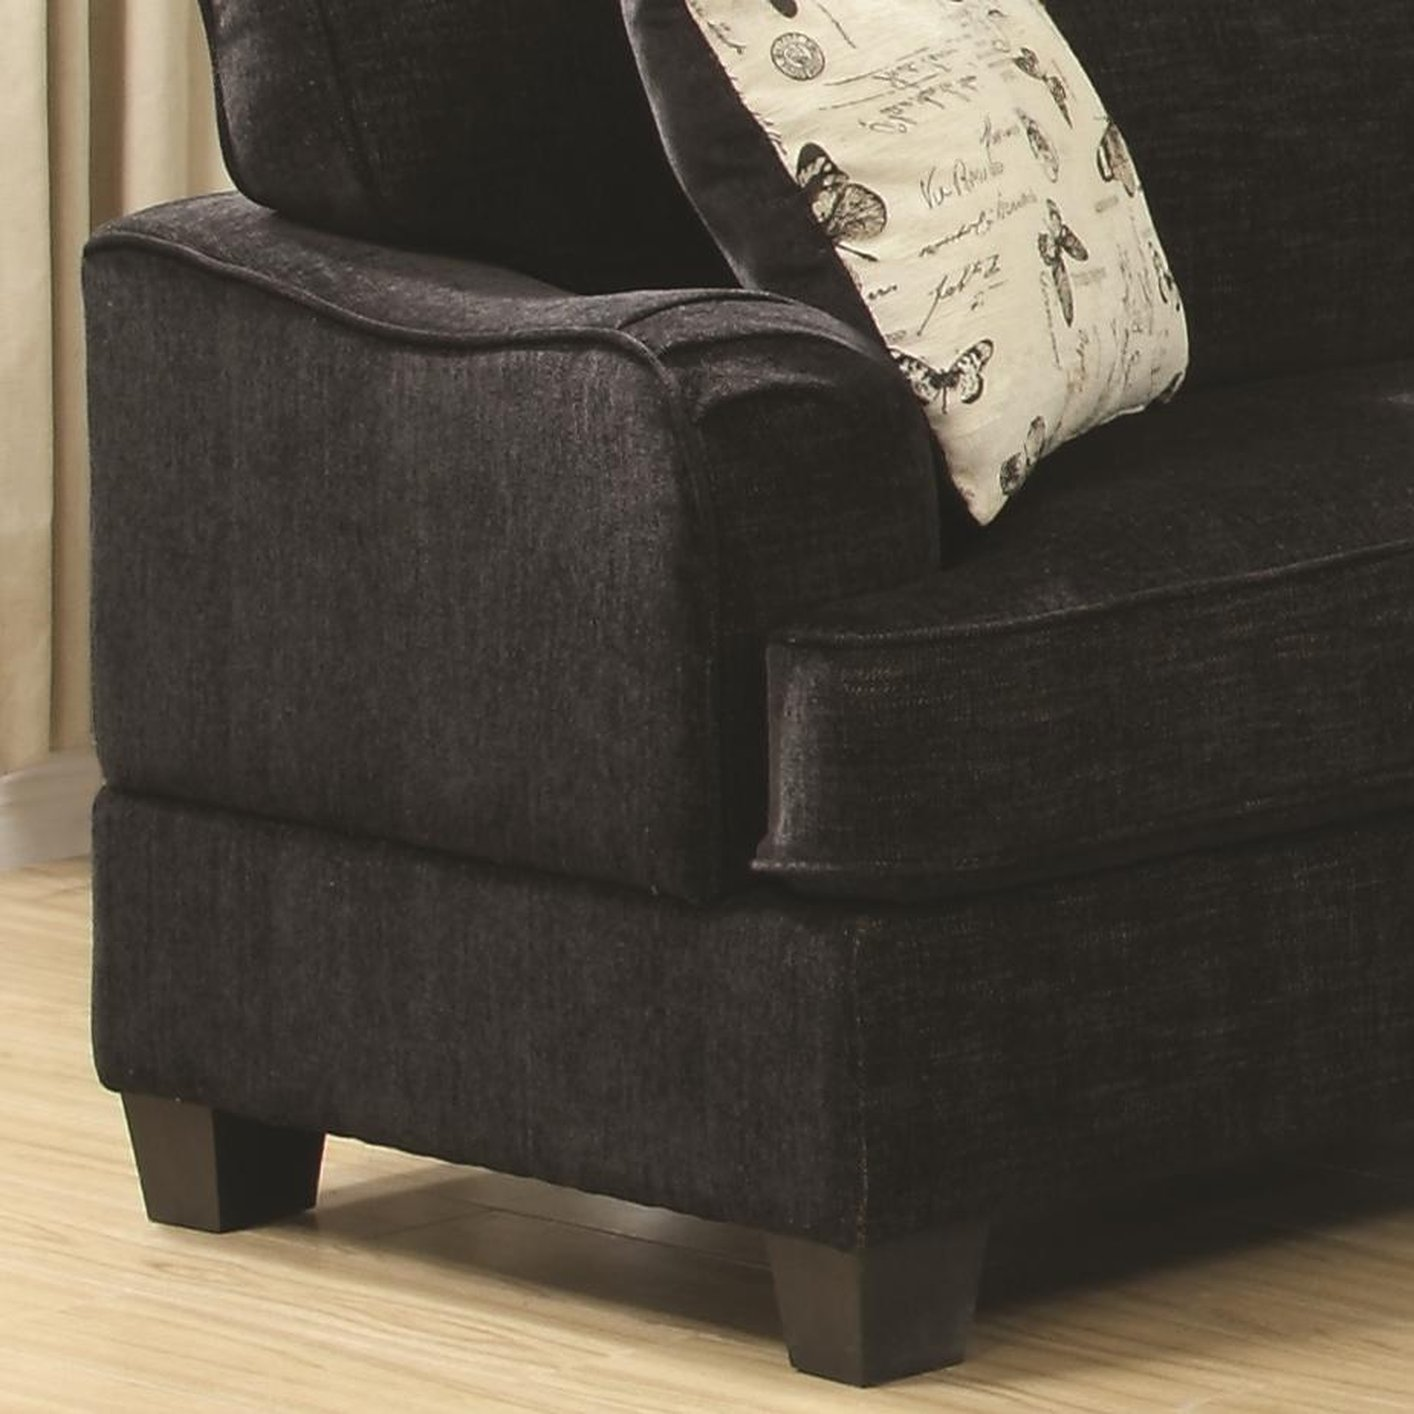 Yasmine Black Fabric Sofa Steal A Sofa Furniture Outlet Los